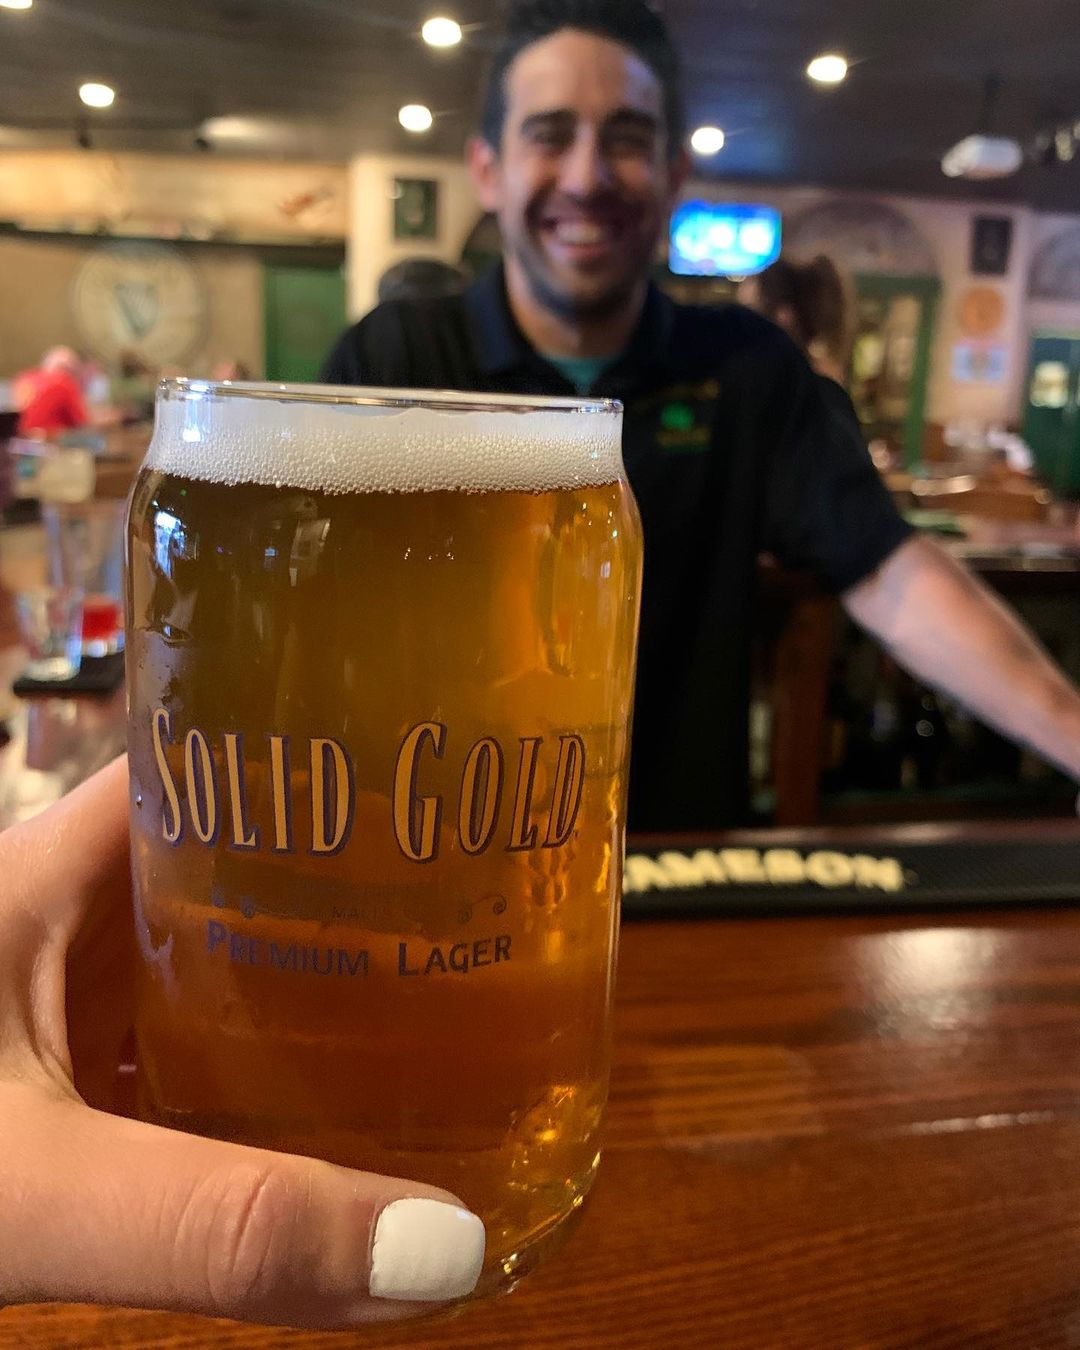 A hand holding a branded pint glass of Solid Gold in front of a bartender.